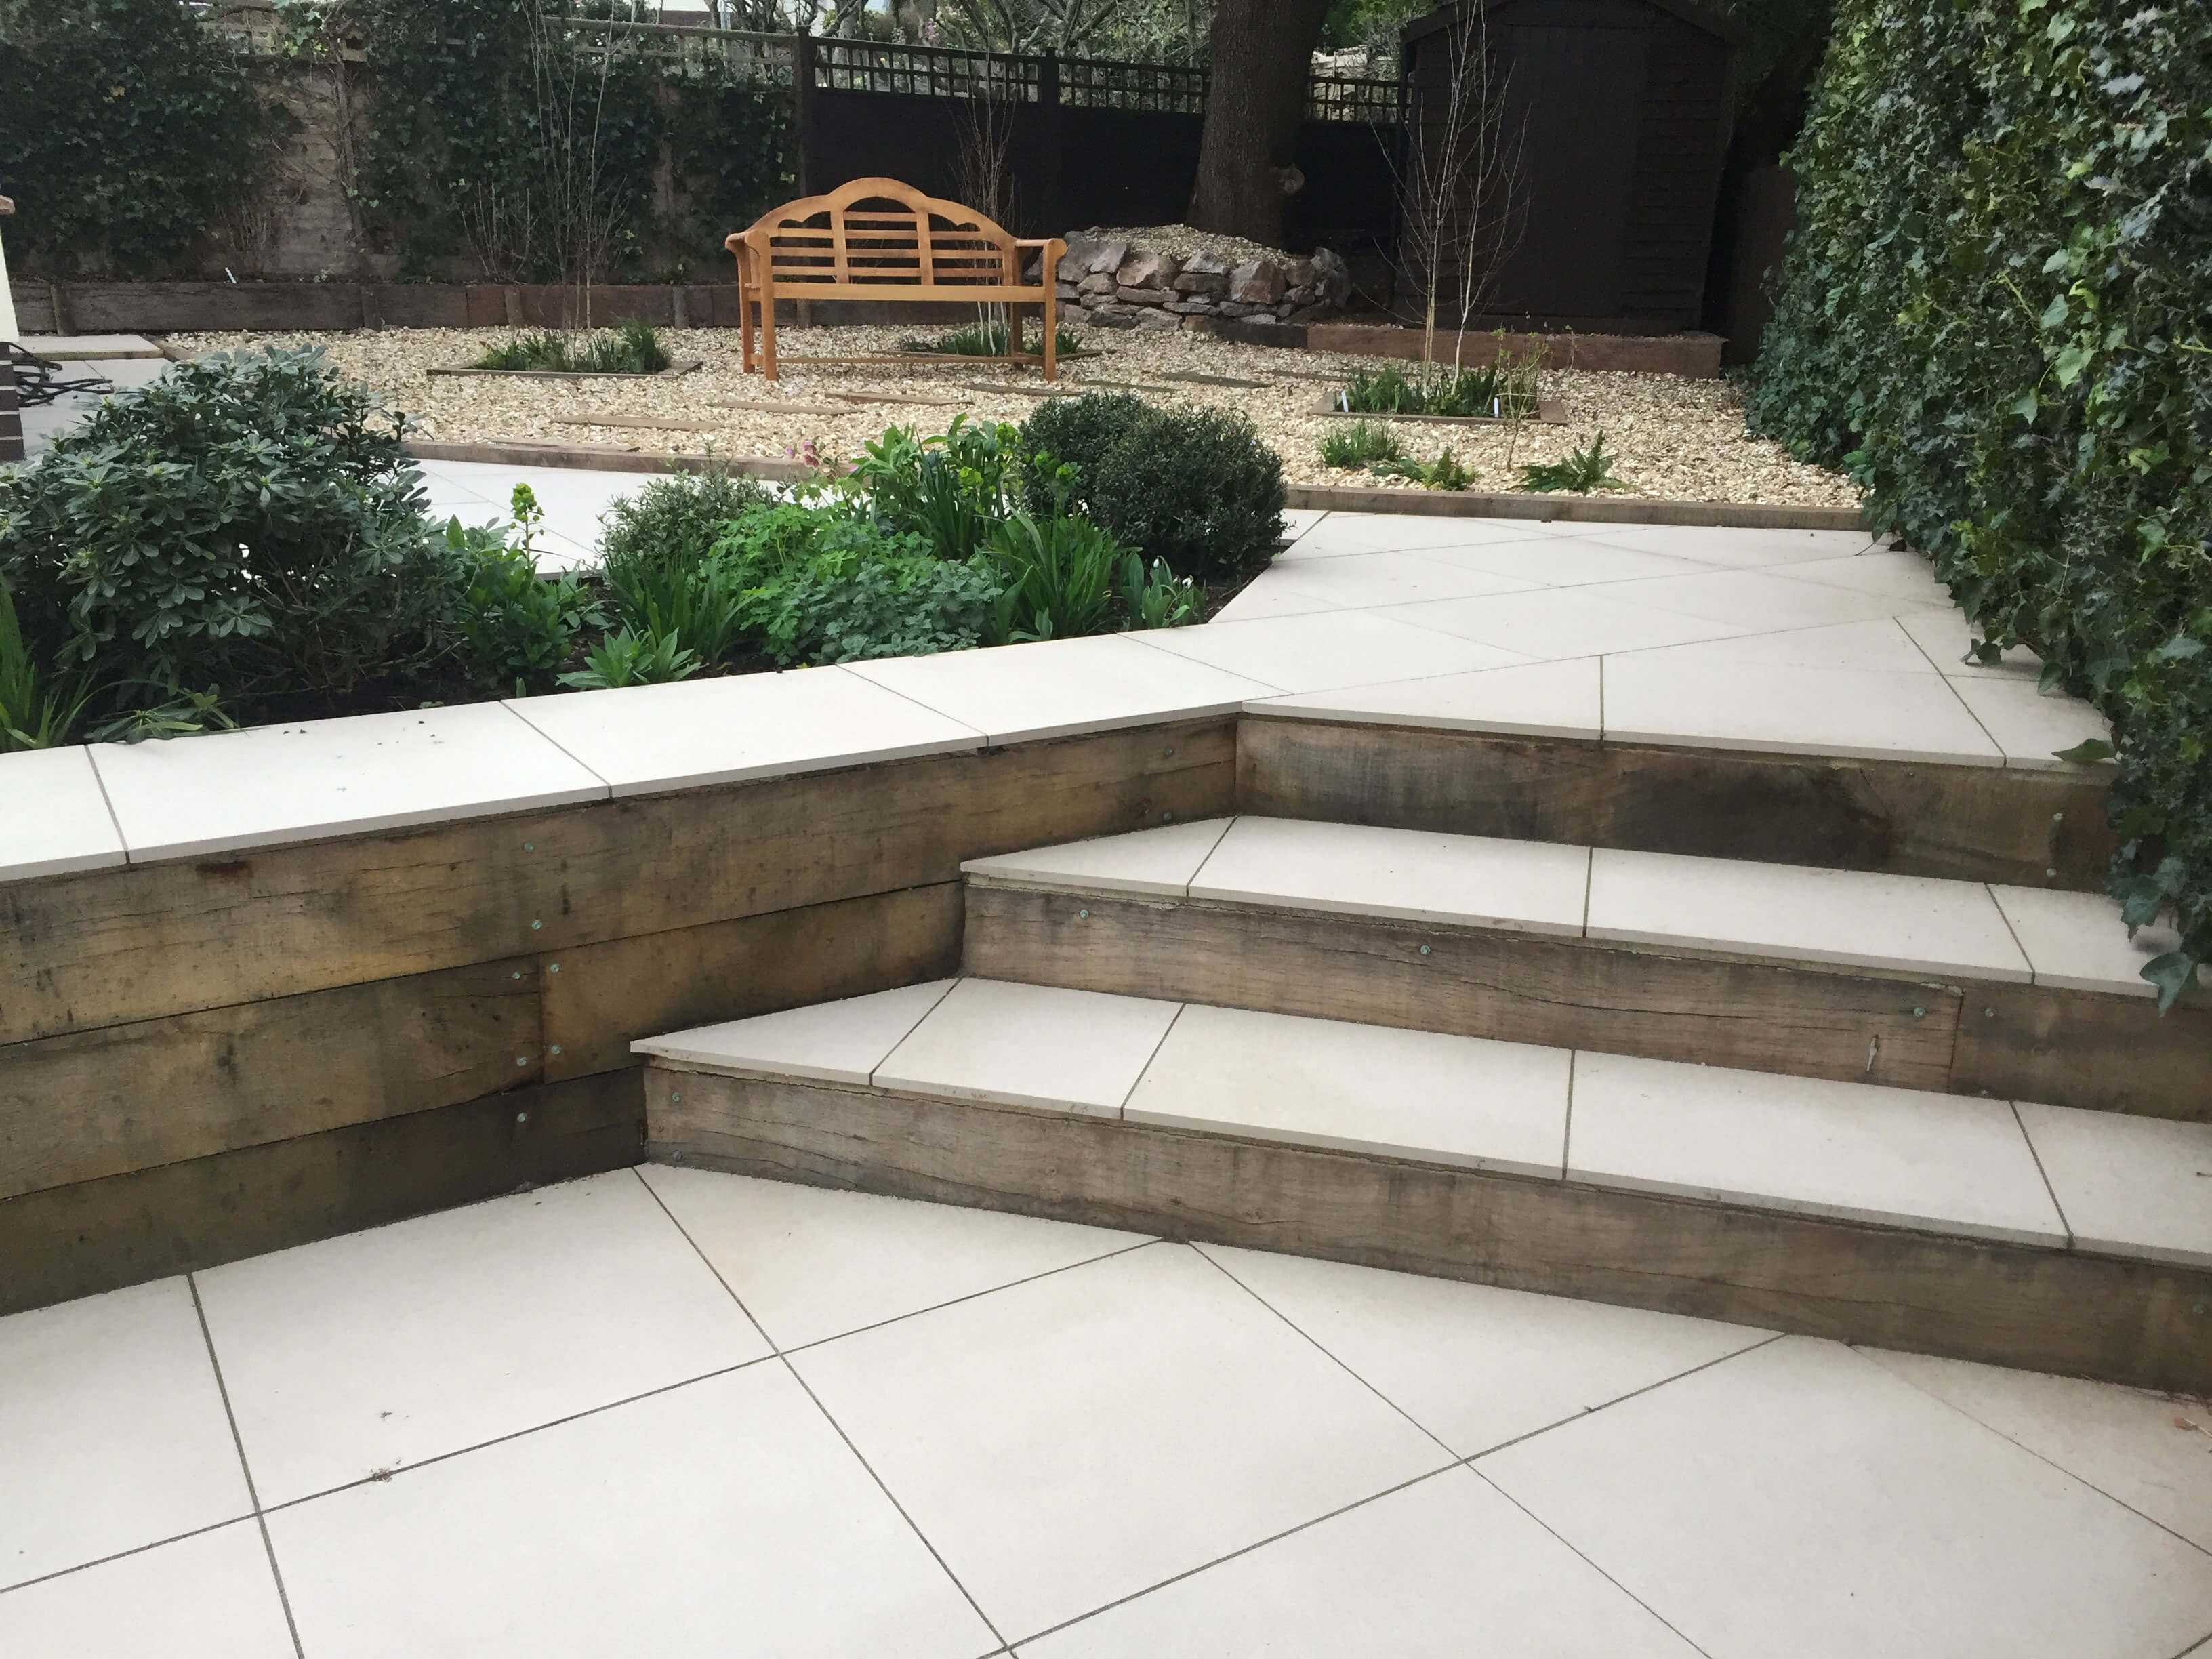 Our Initial Garden Design Service Is Part Of Our Commitment To Our  Landscaping Clients And Is Both FREE And BESPOKE. As Part Of Your  Landscaping Project We ...